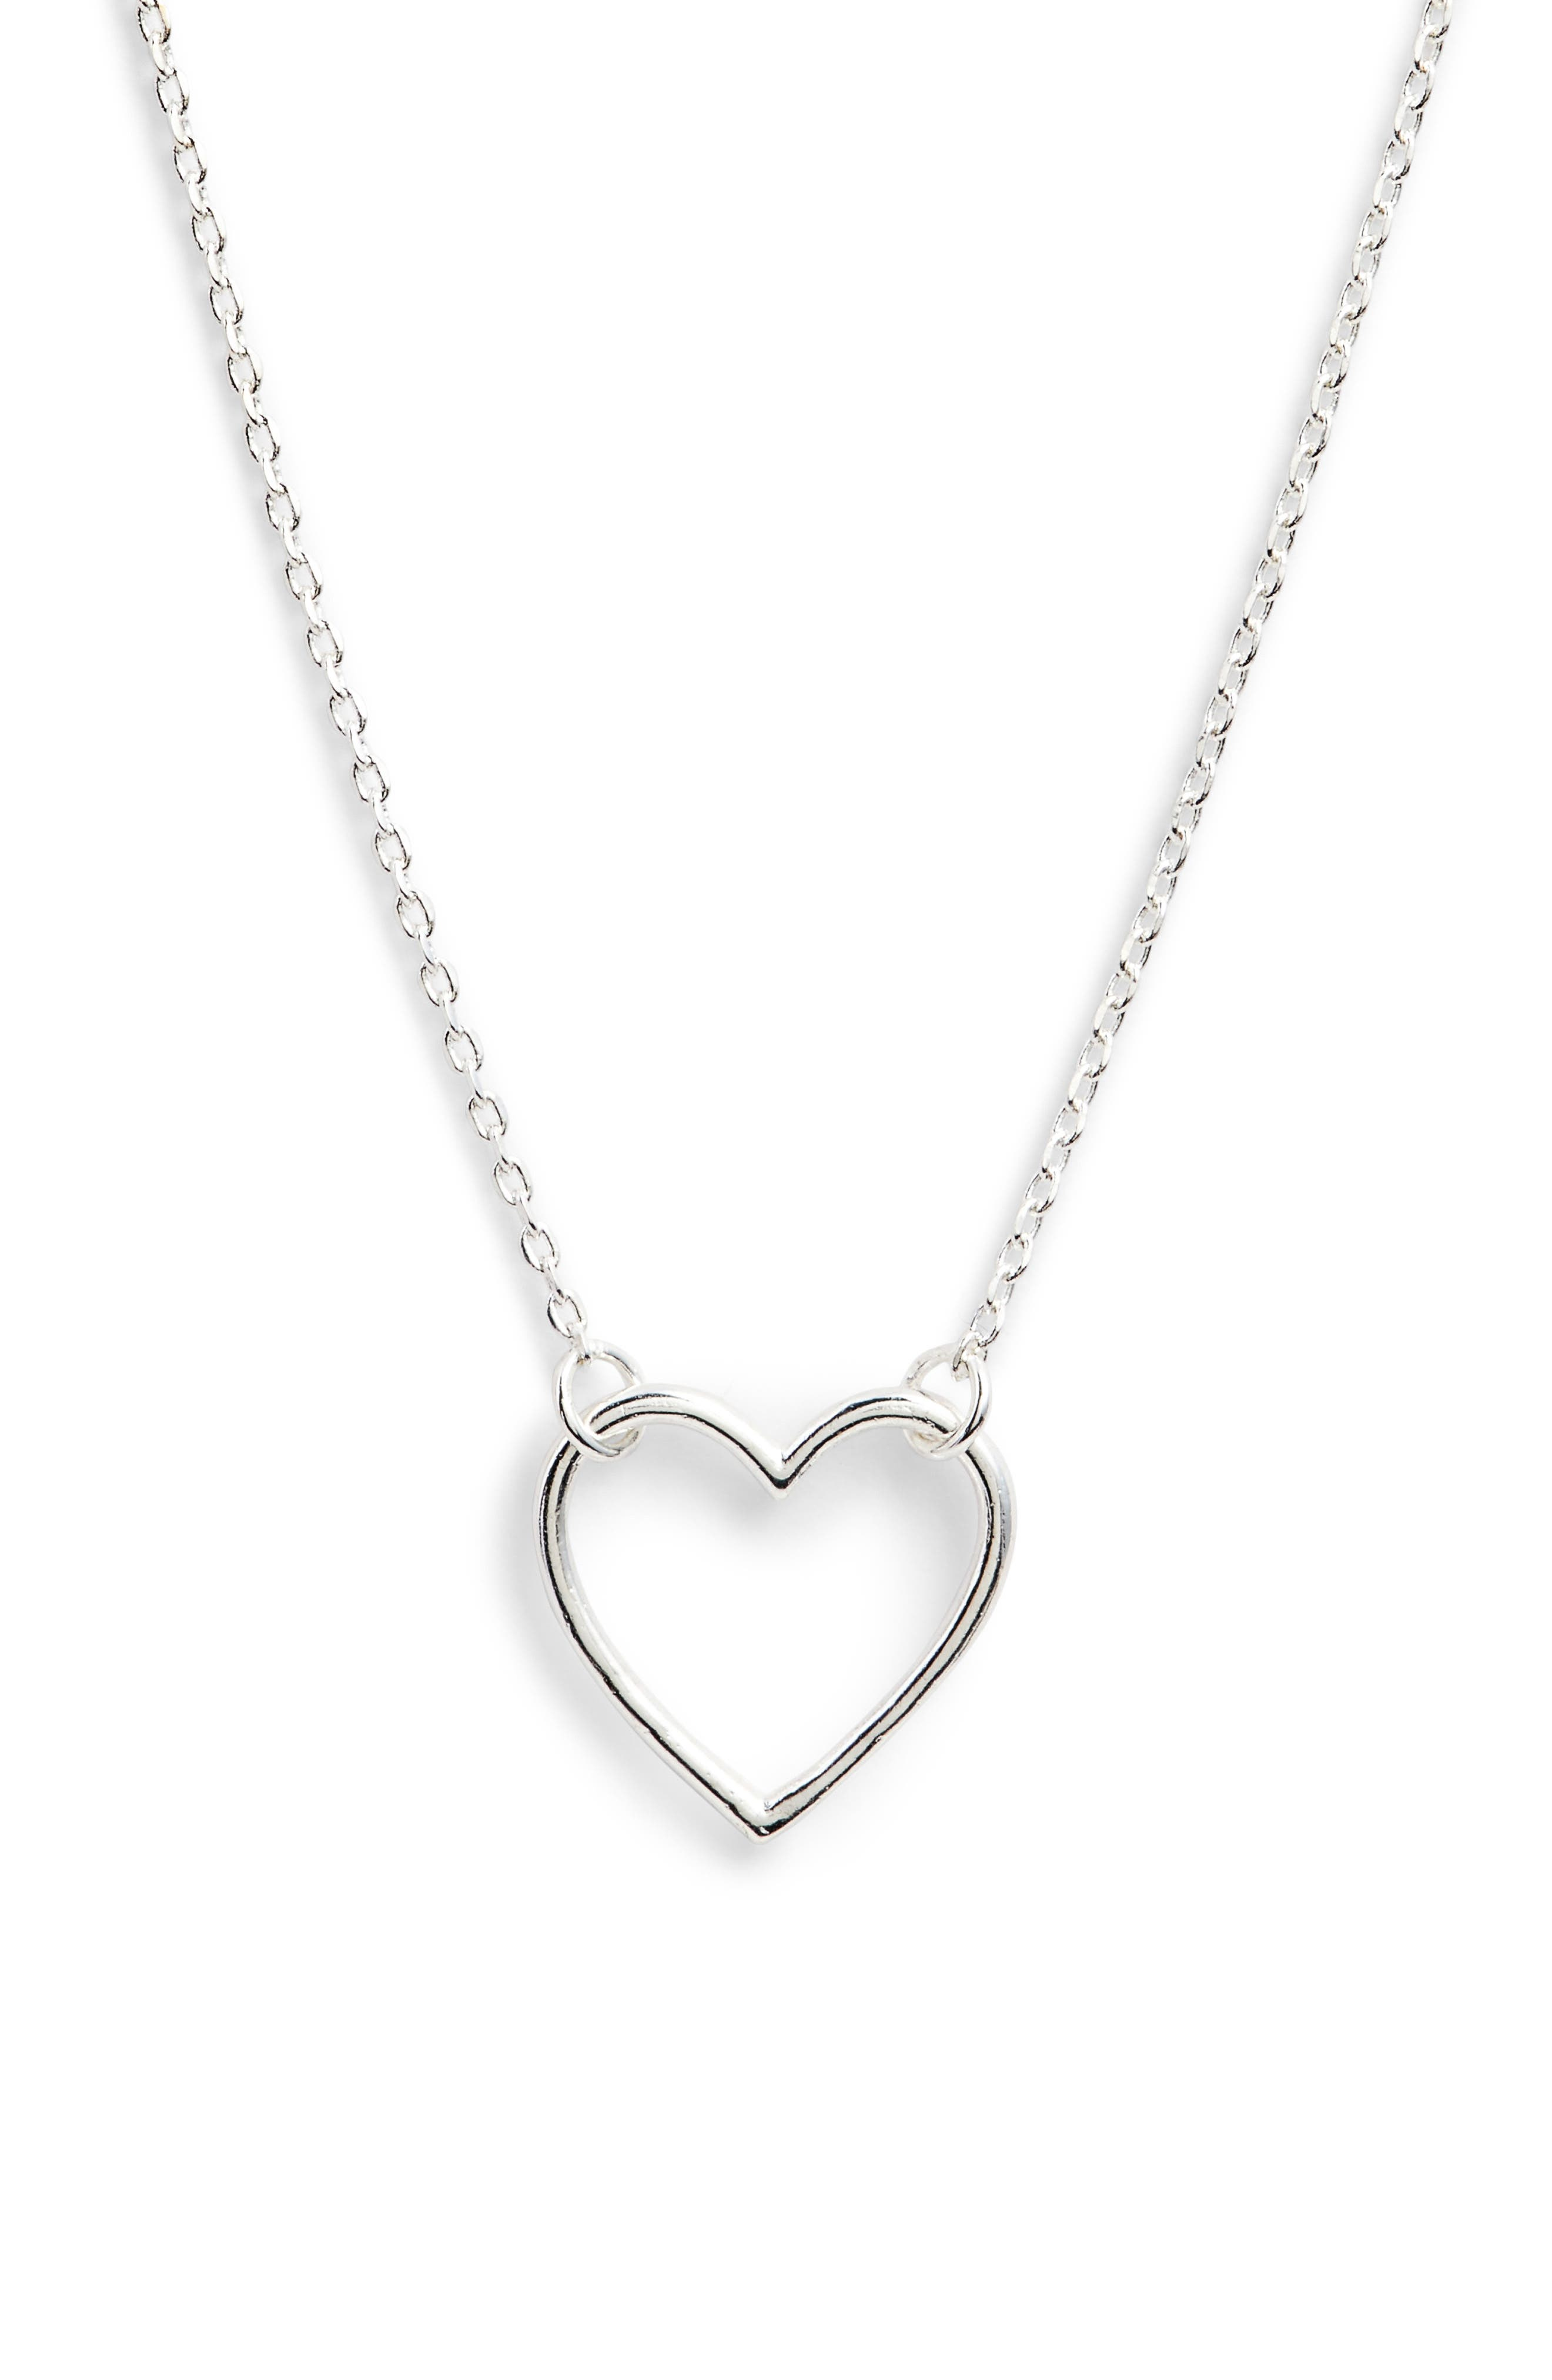 Open Heart Necklace,                             Main thumbnail 1, color,                             040